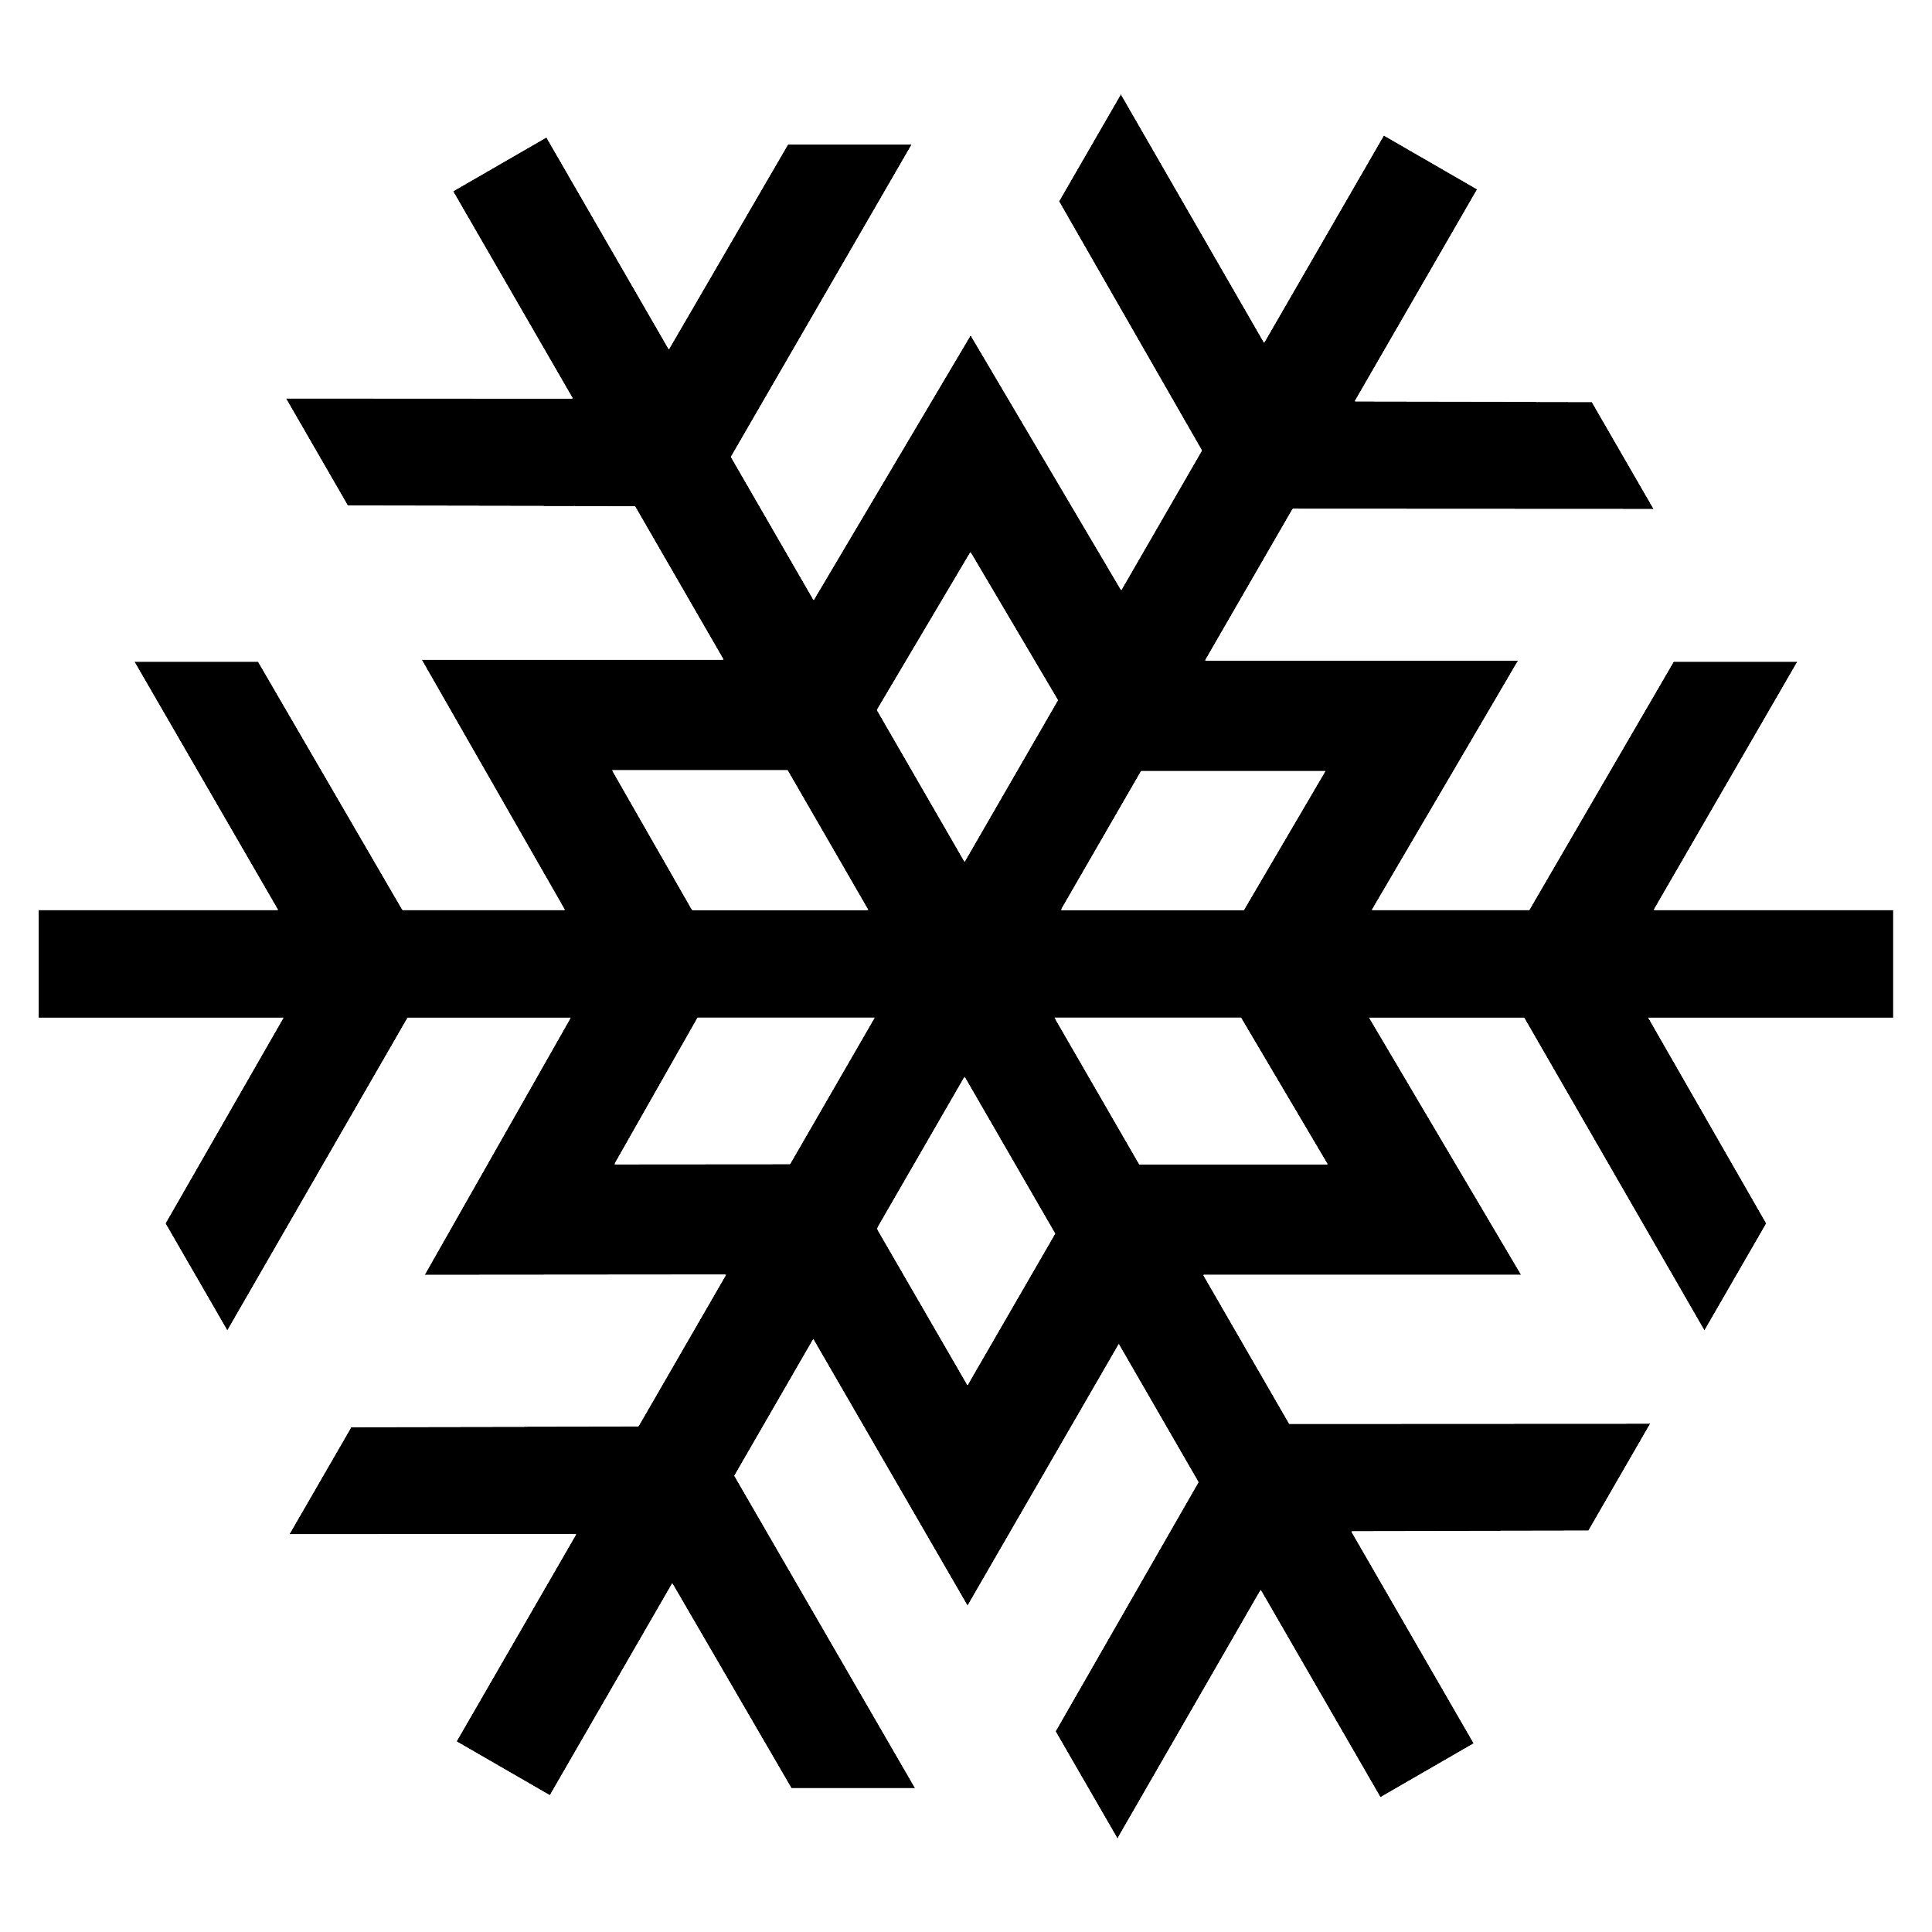 Snowflake clipart png. Snowflakes image purepng free